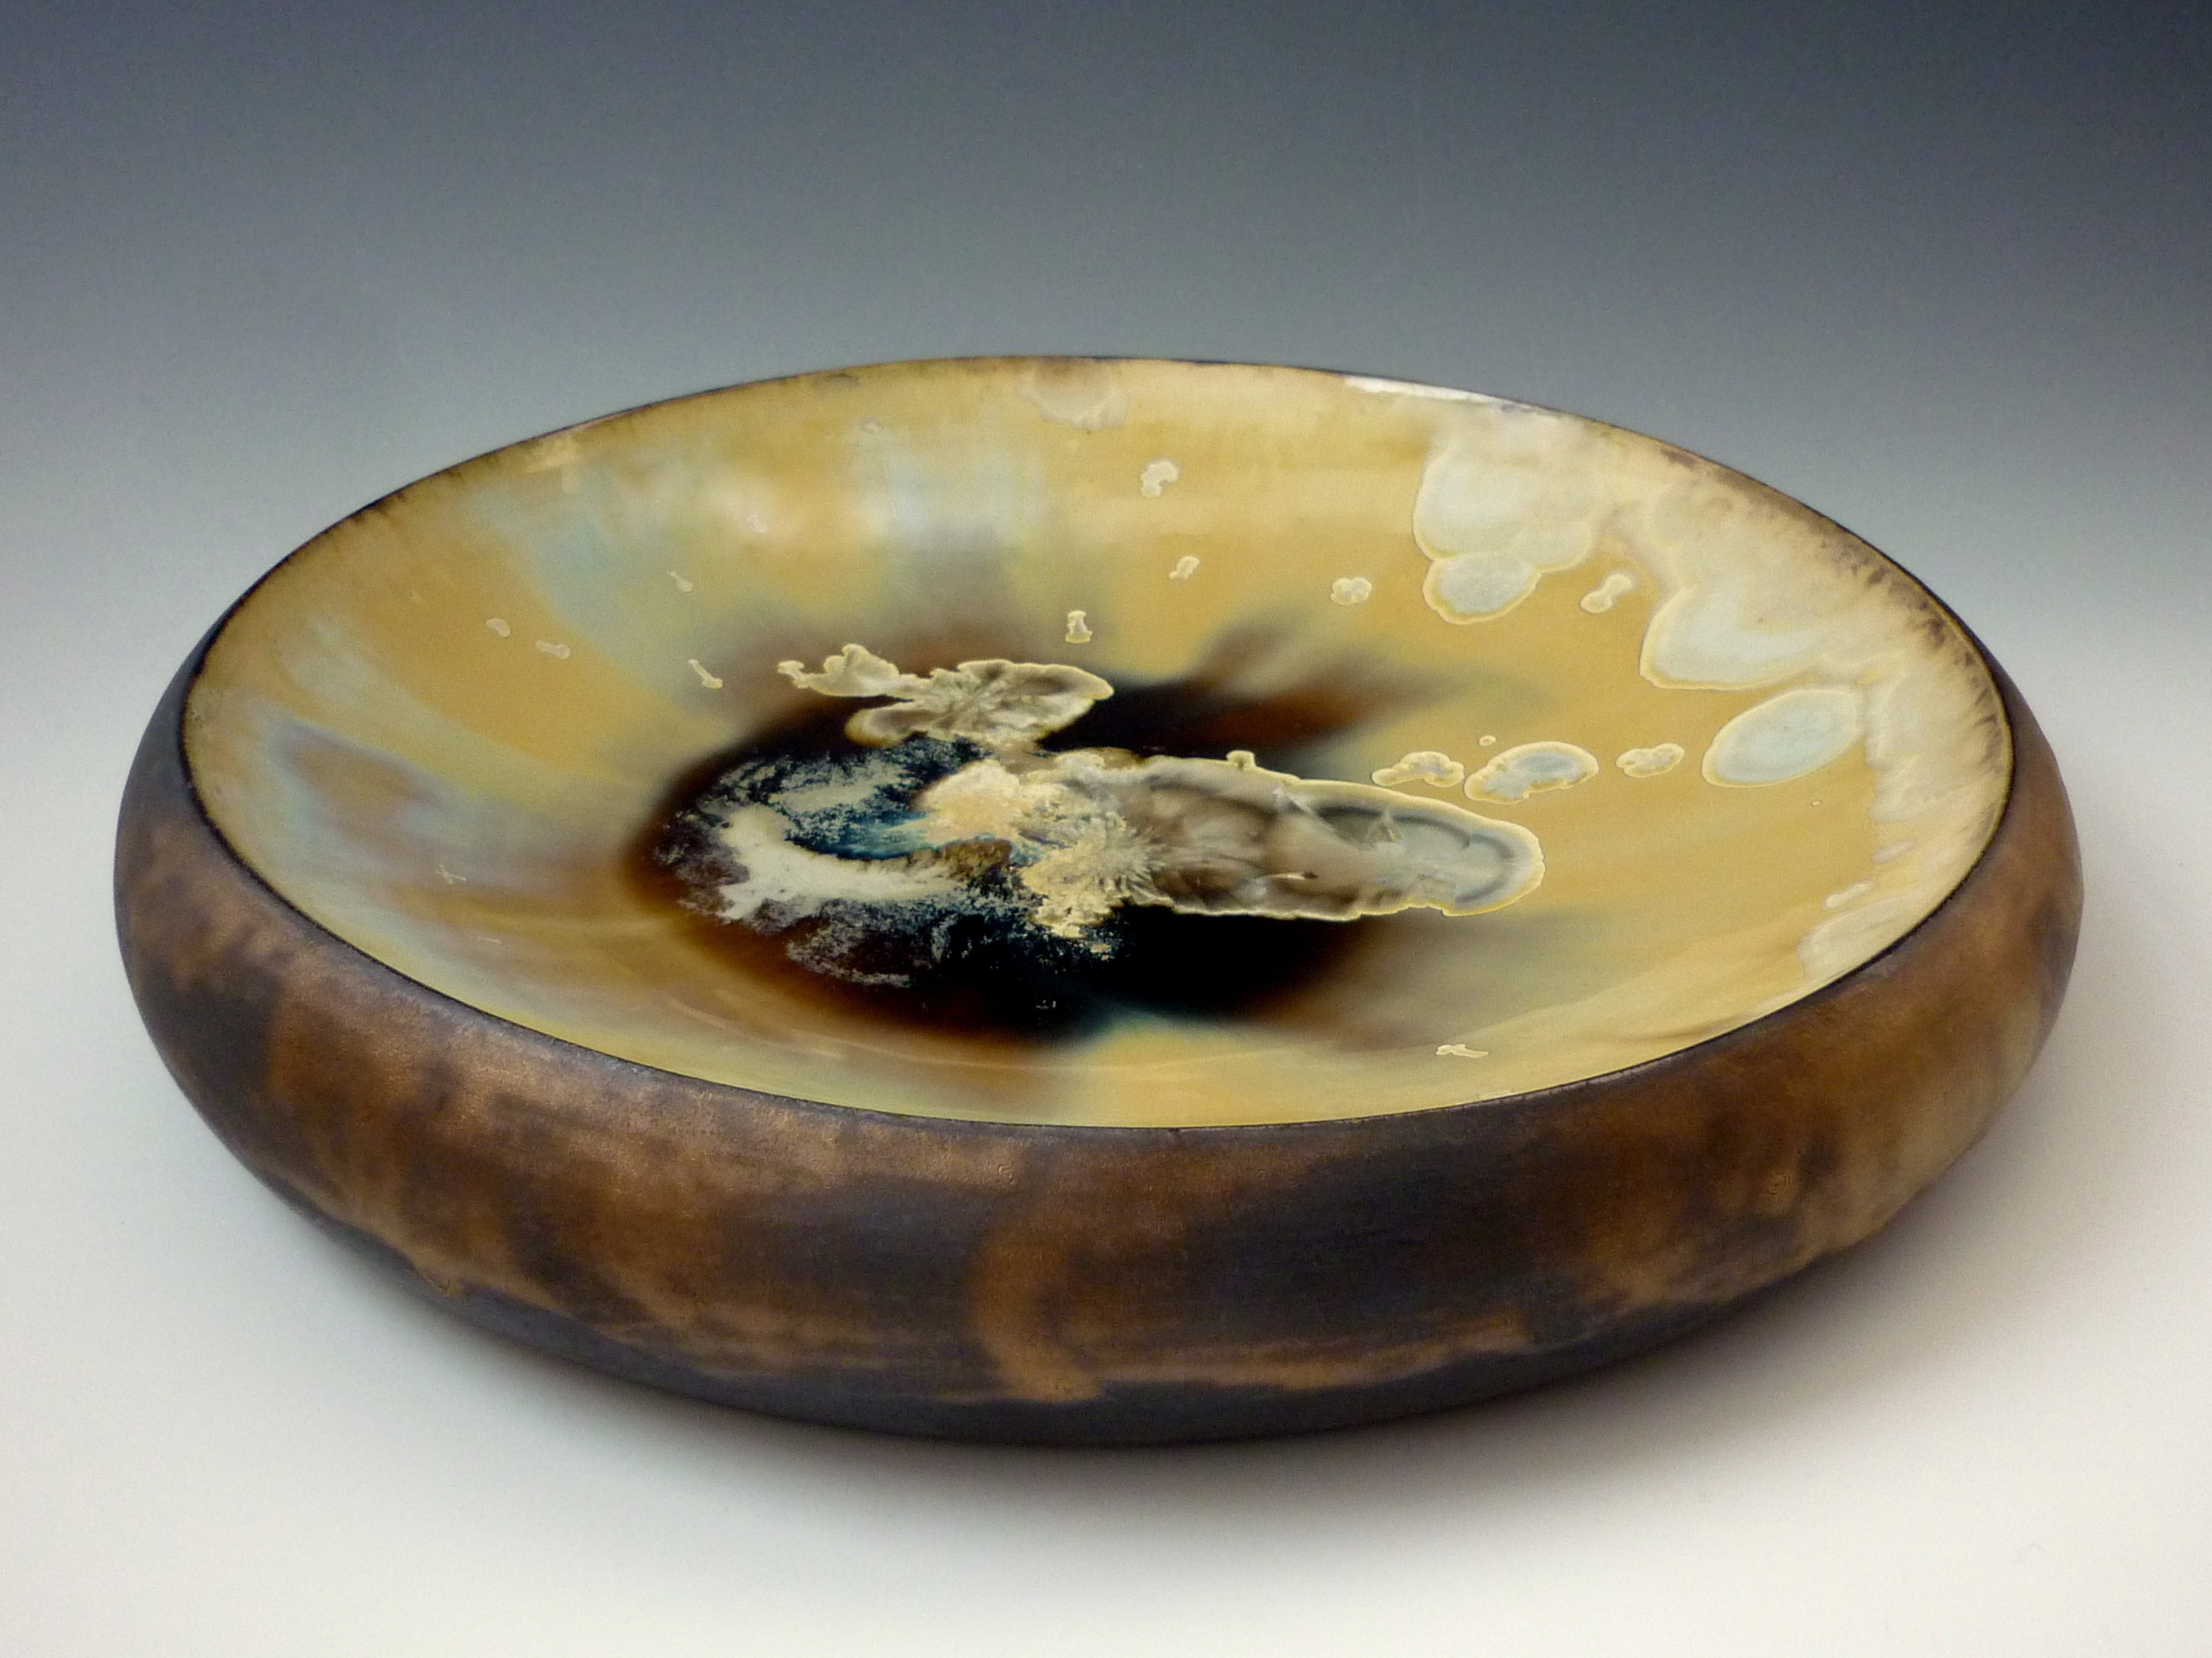 Golden Bowl crystalline ceramics skye maggie zerafa